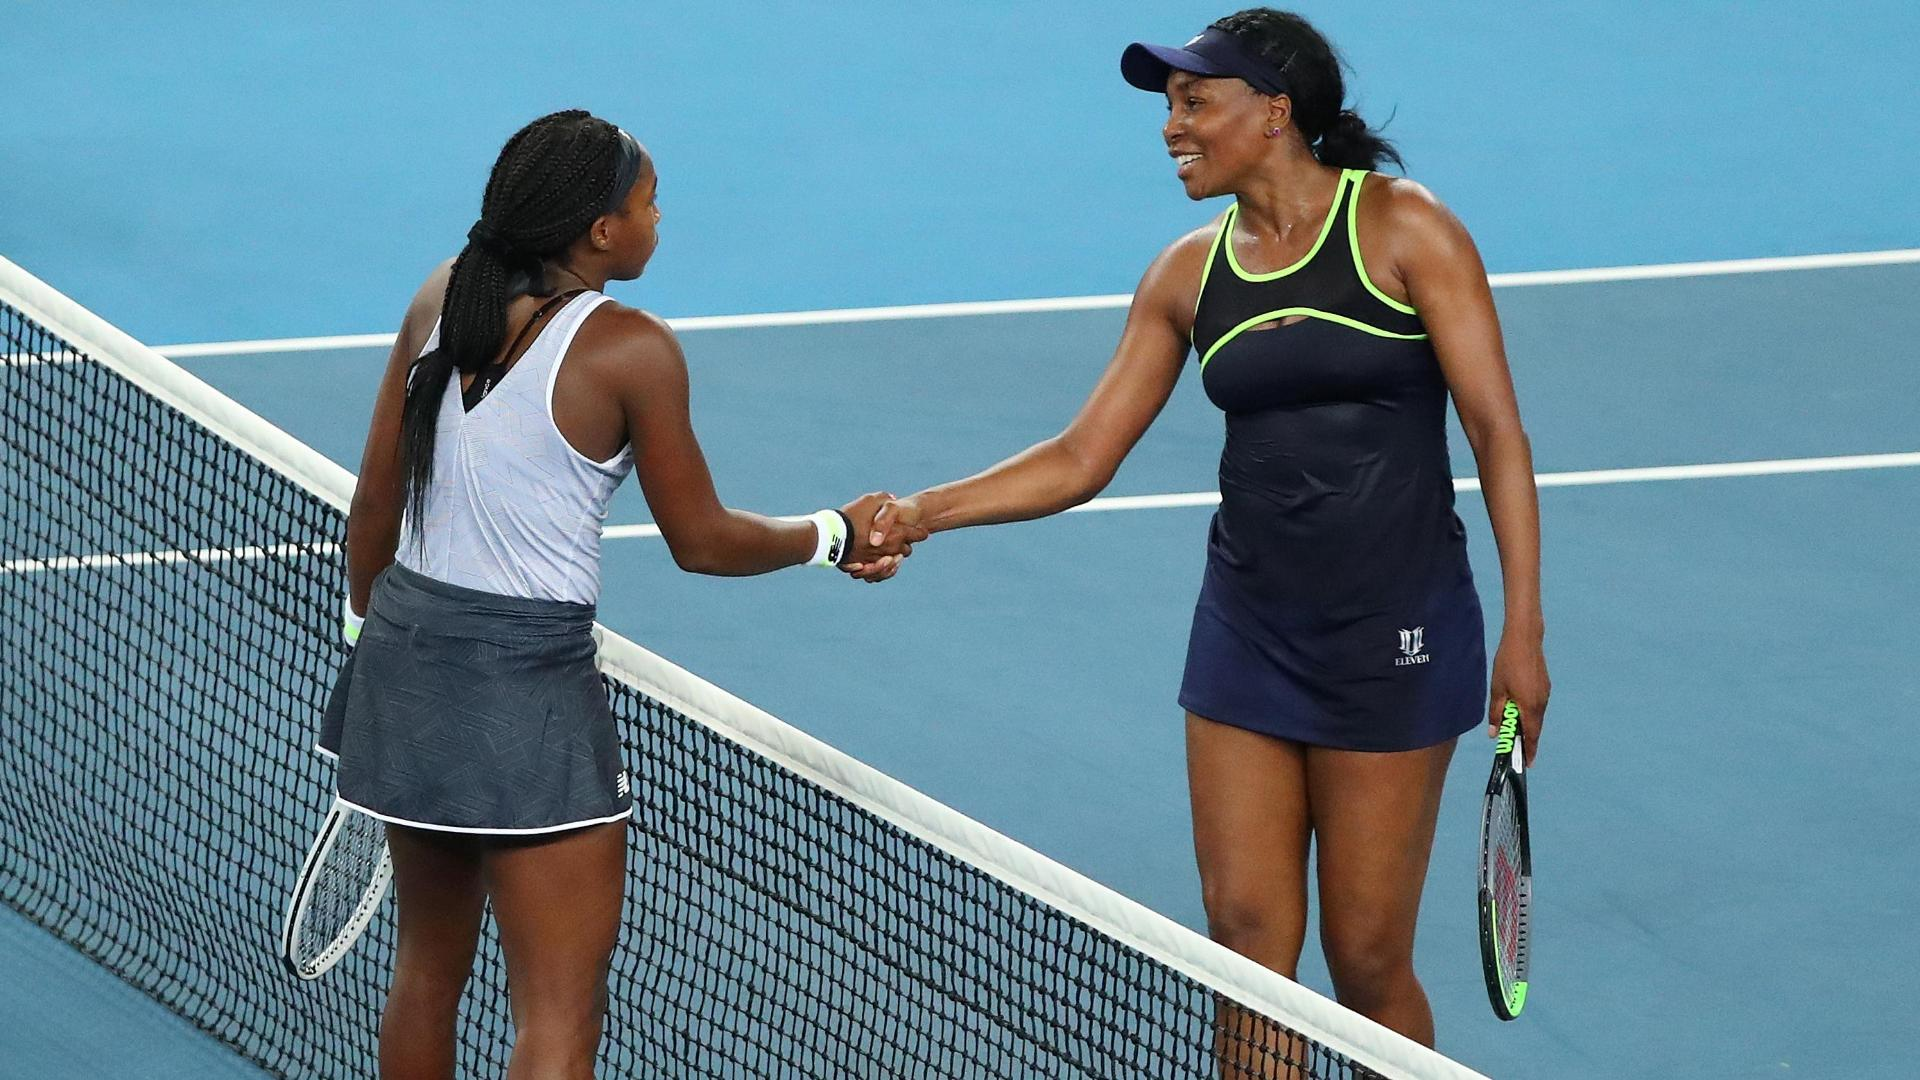 Coco tops Venus for first career win at Australian Open